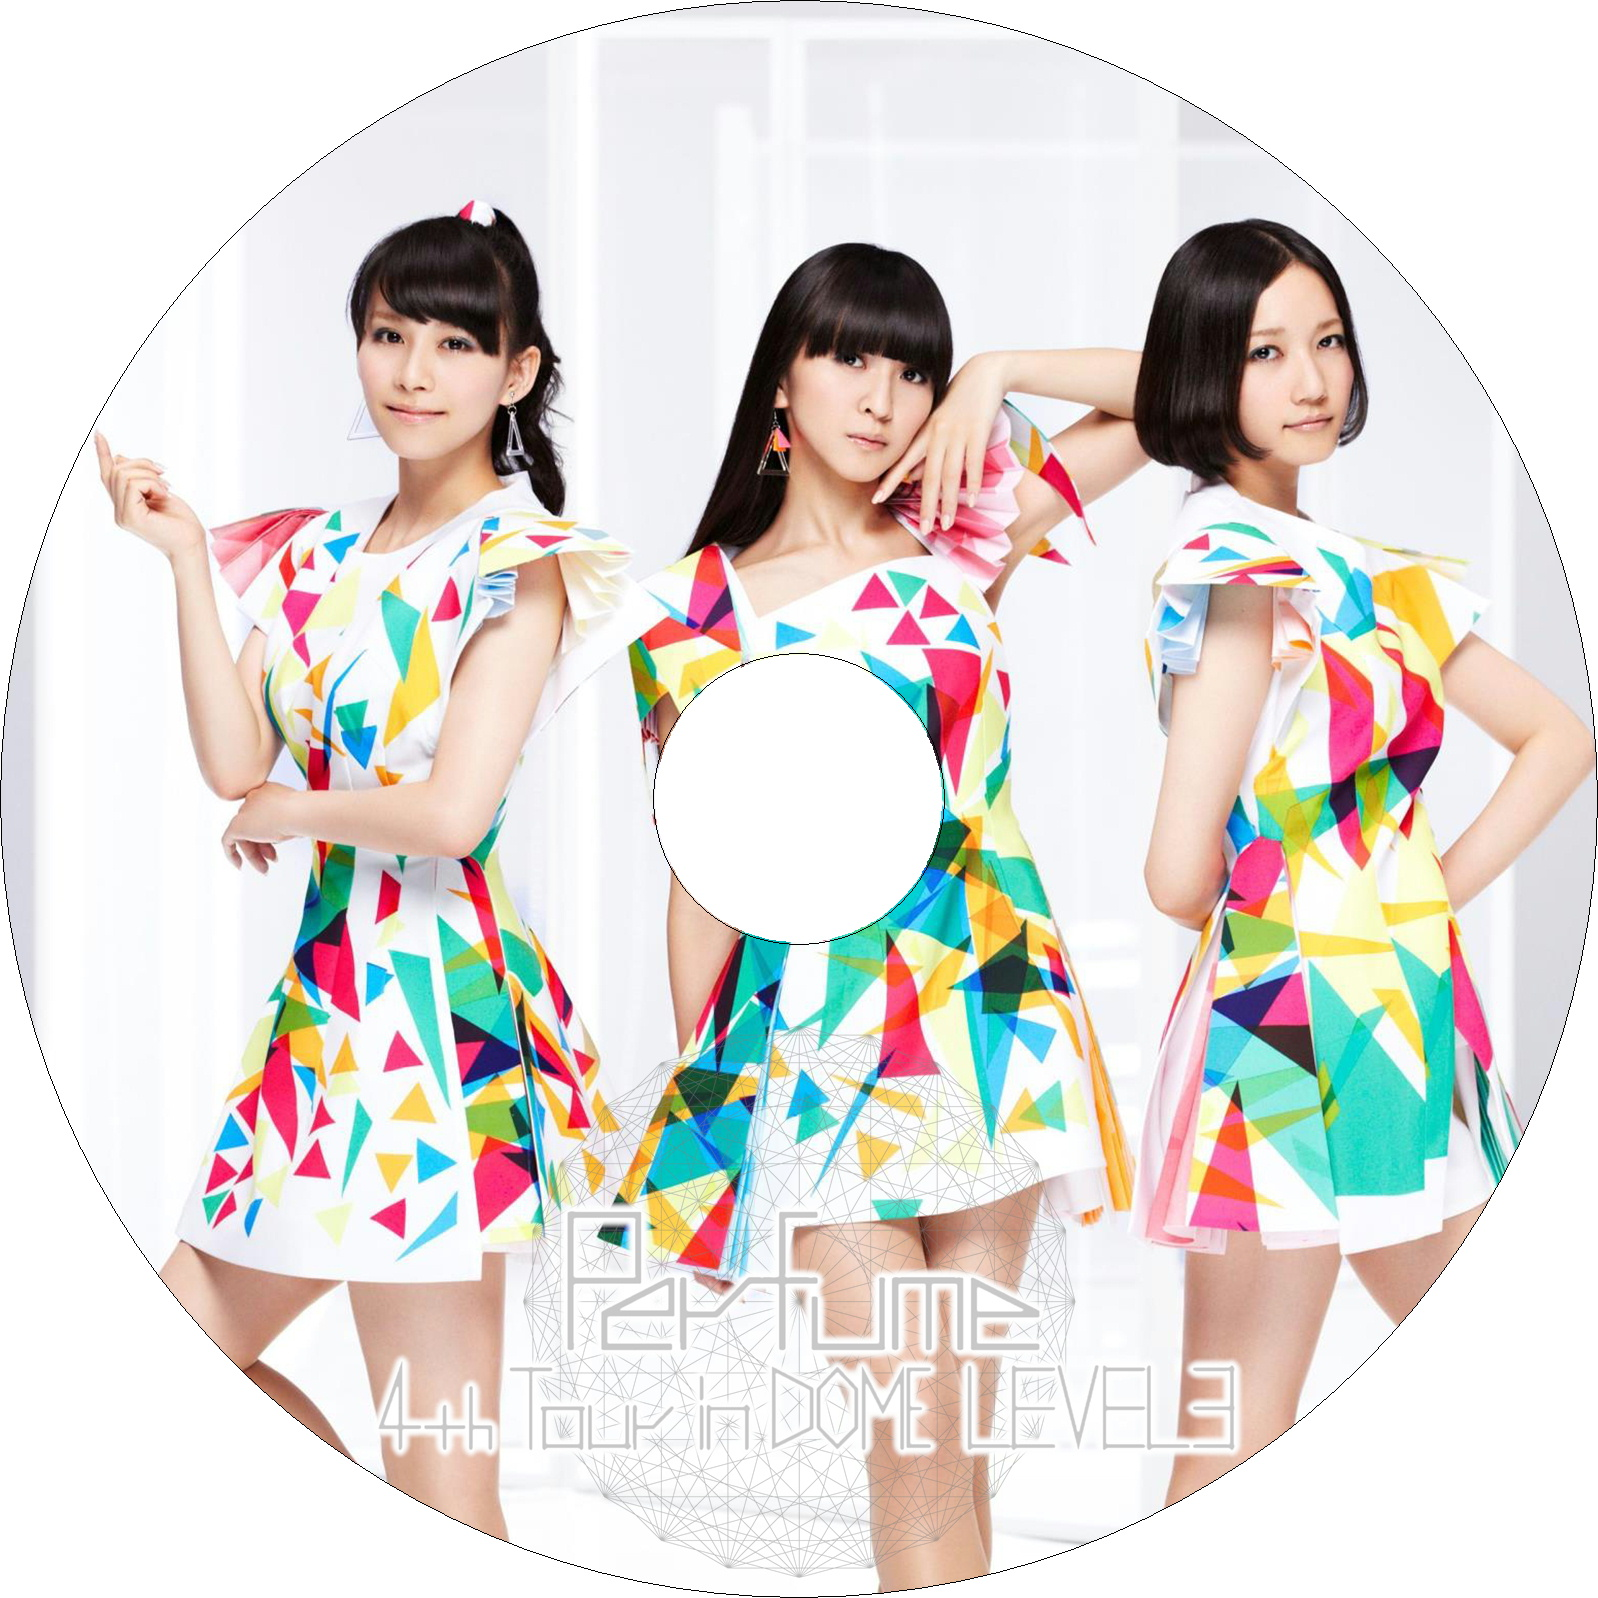 Perfume 4th Tour in DOME 「LEVEL3」 ラベル改・改